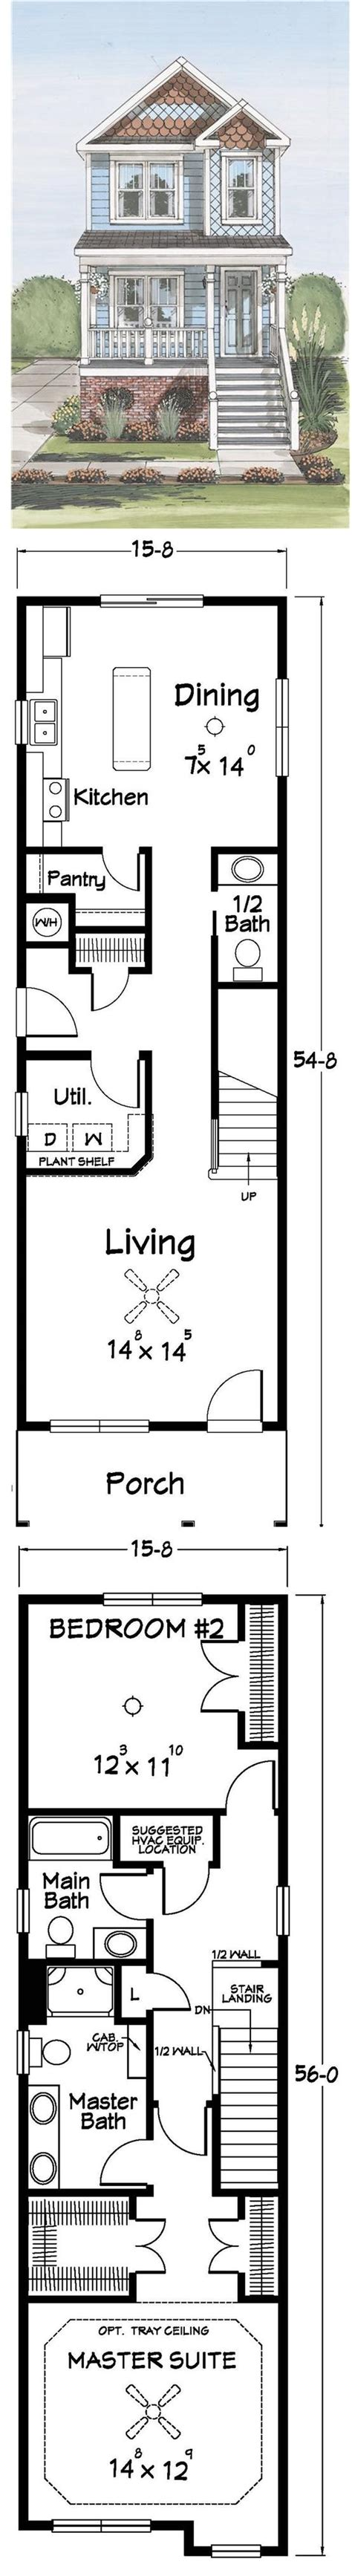 small lot home plans narrow house plans woodworking projects plans